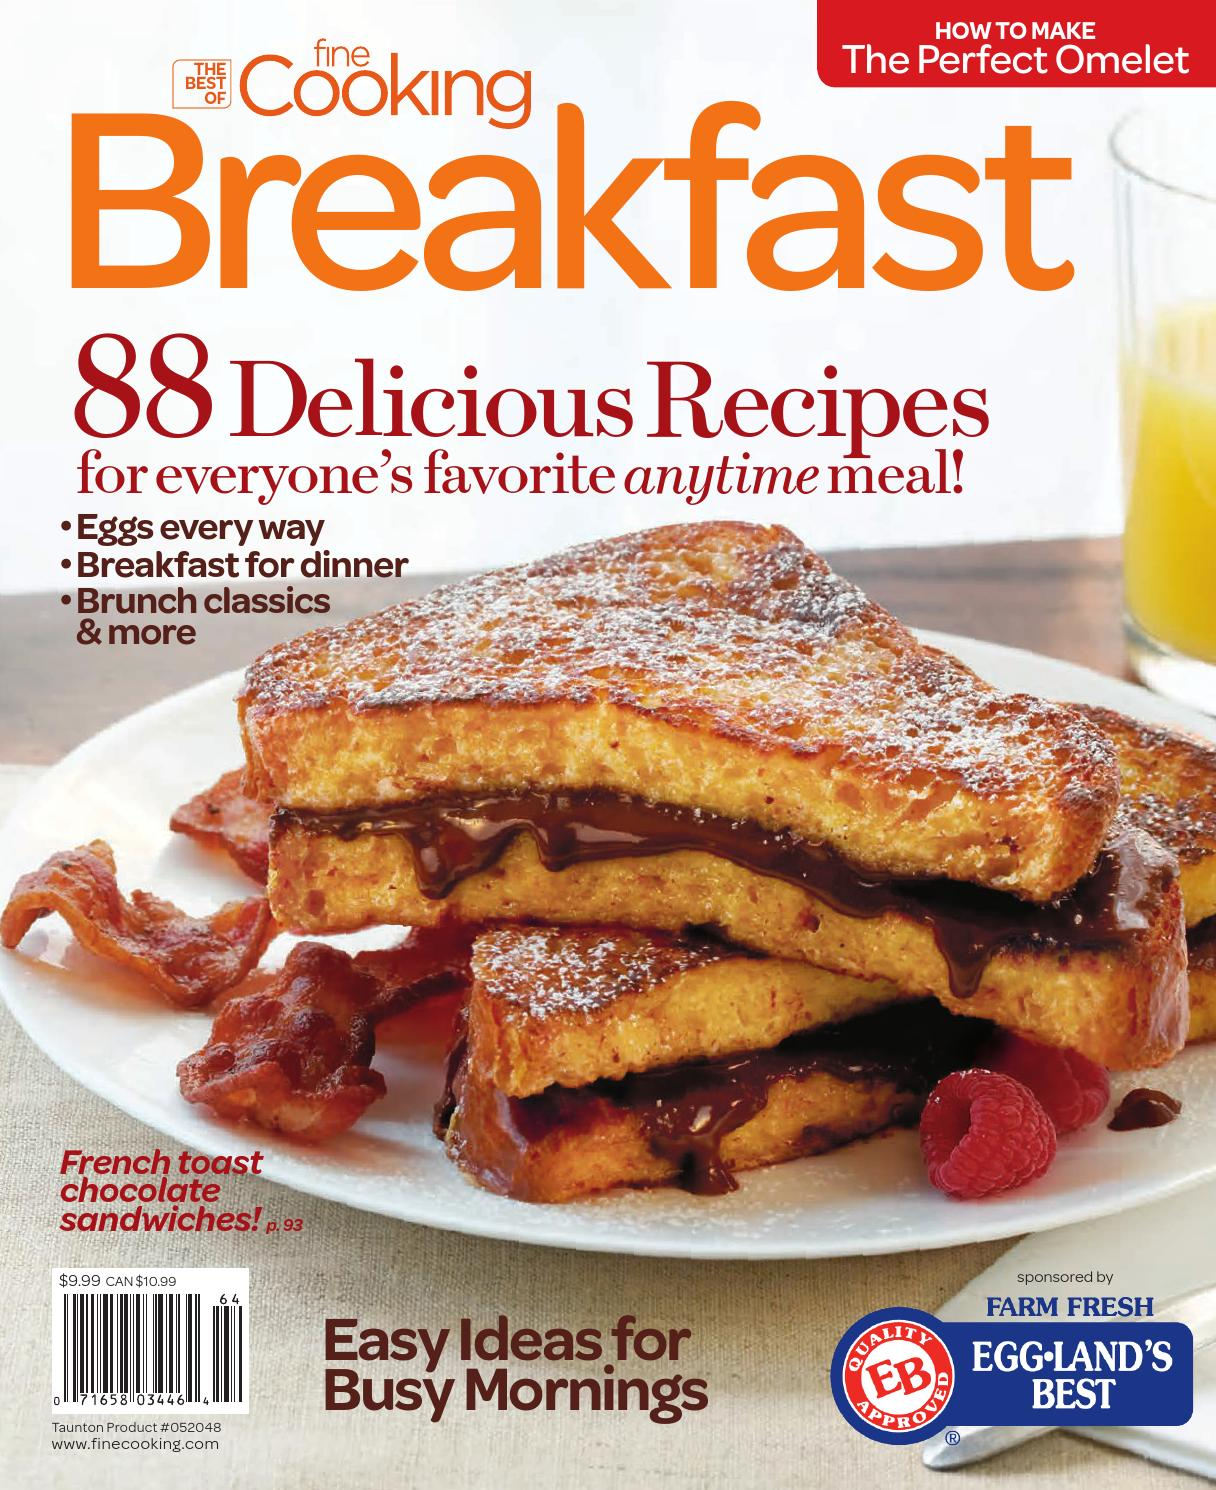 How To Make A Book Quick : Finecooking breakfast by i b green issuu